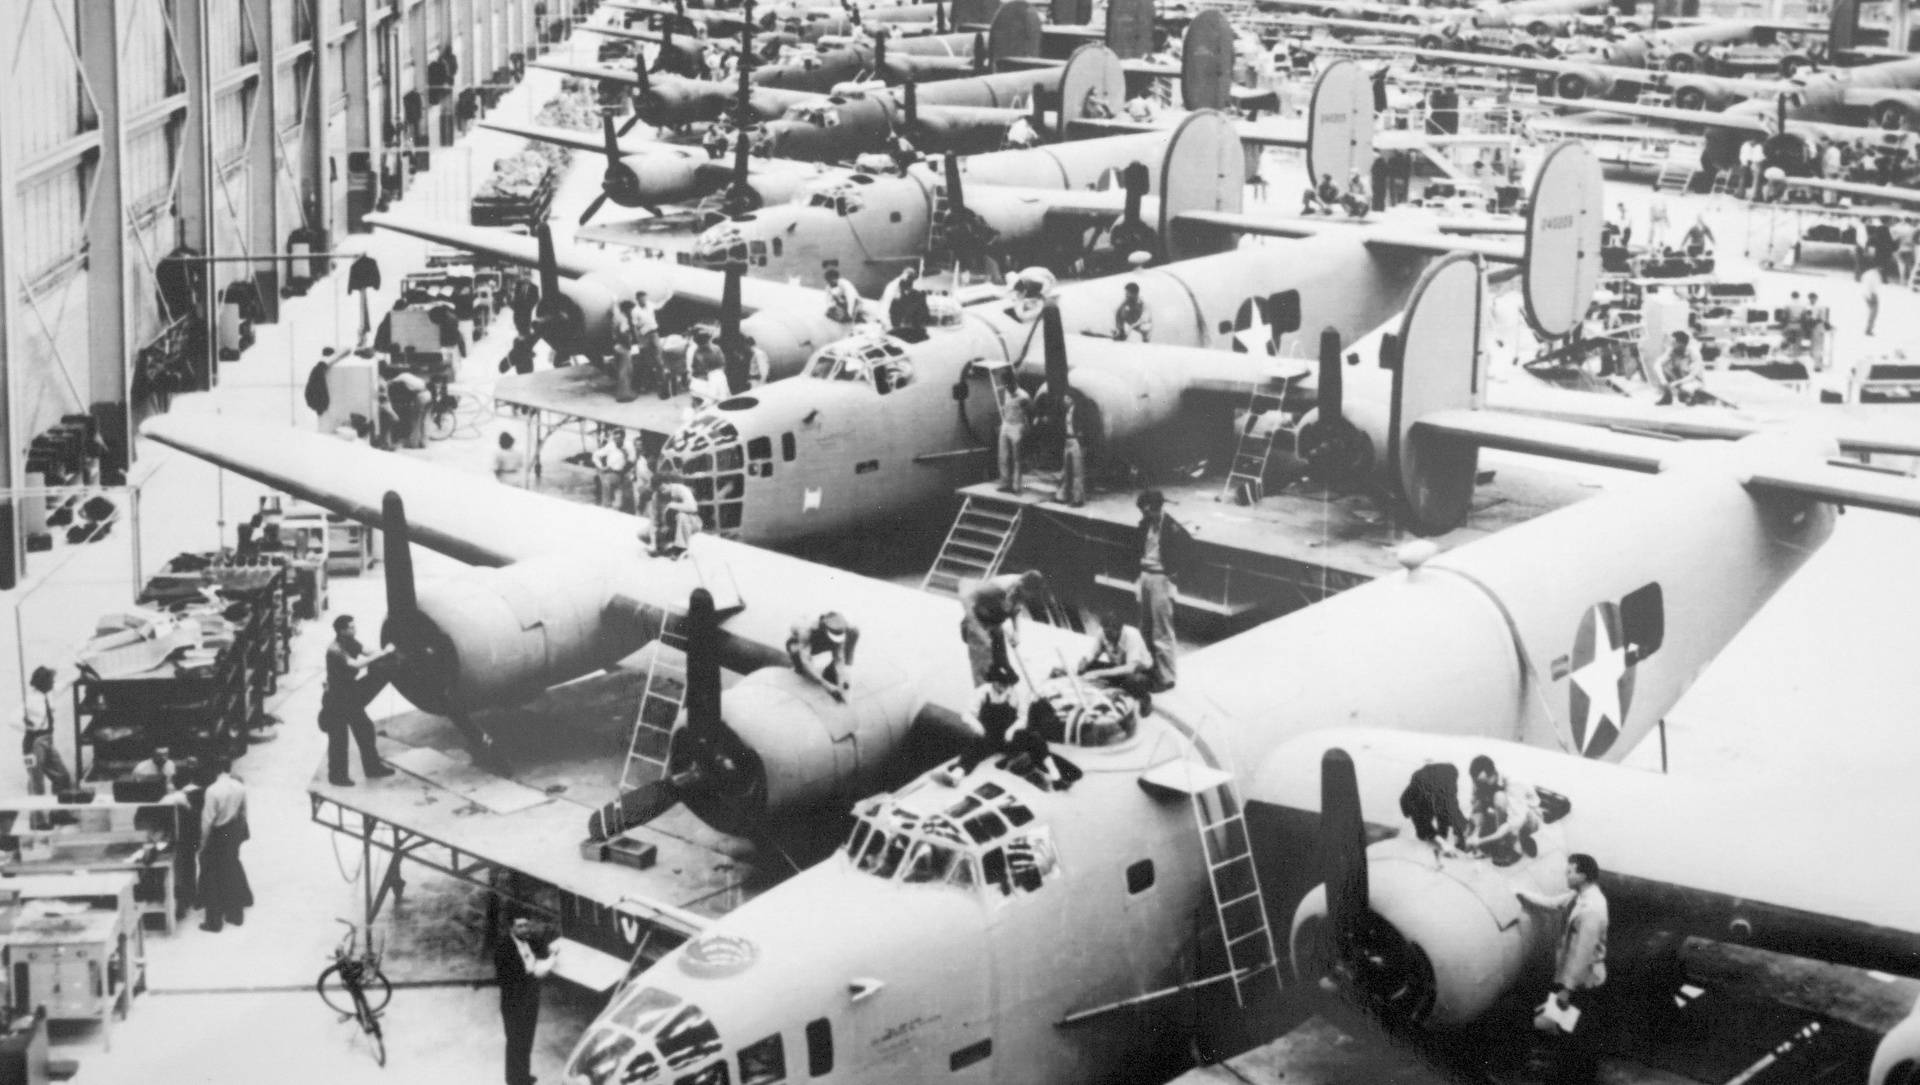 Willow Run assembly plant in Michigan